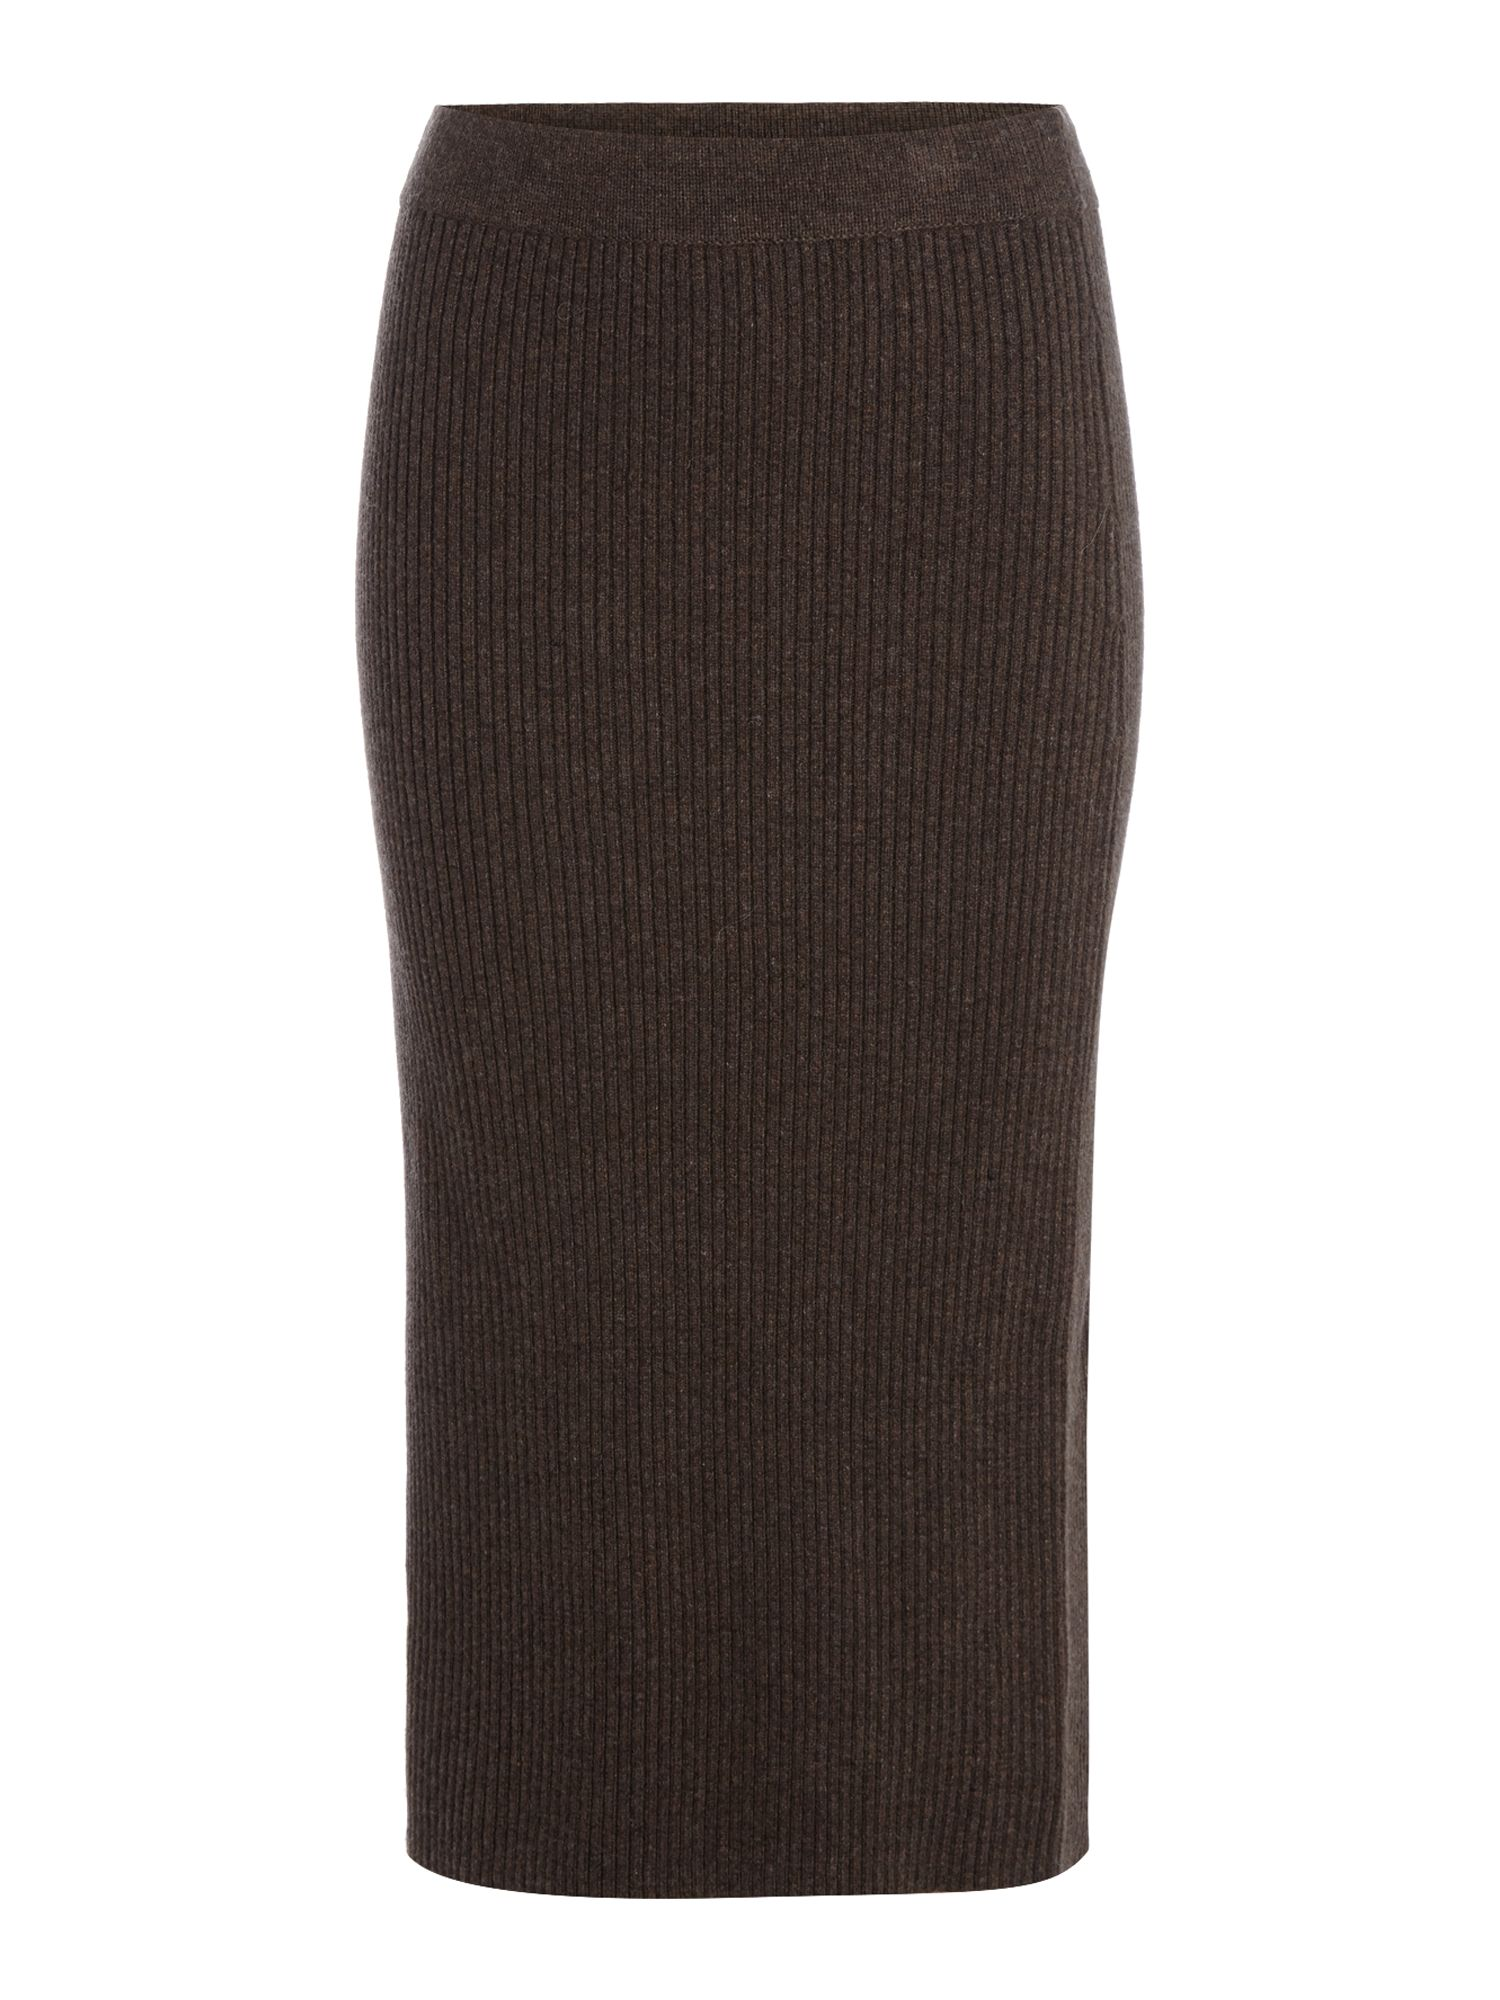 Linea Limited Knitted Rib Skirt, Chocolate